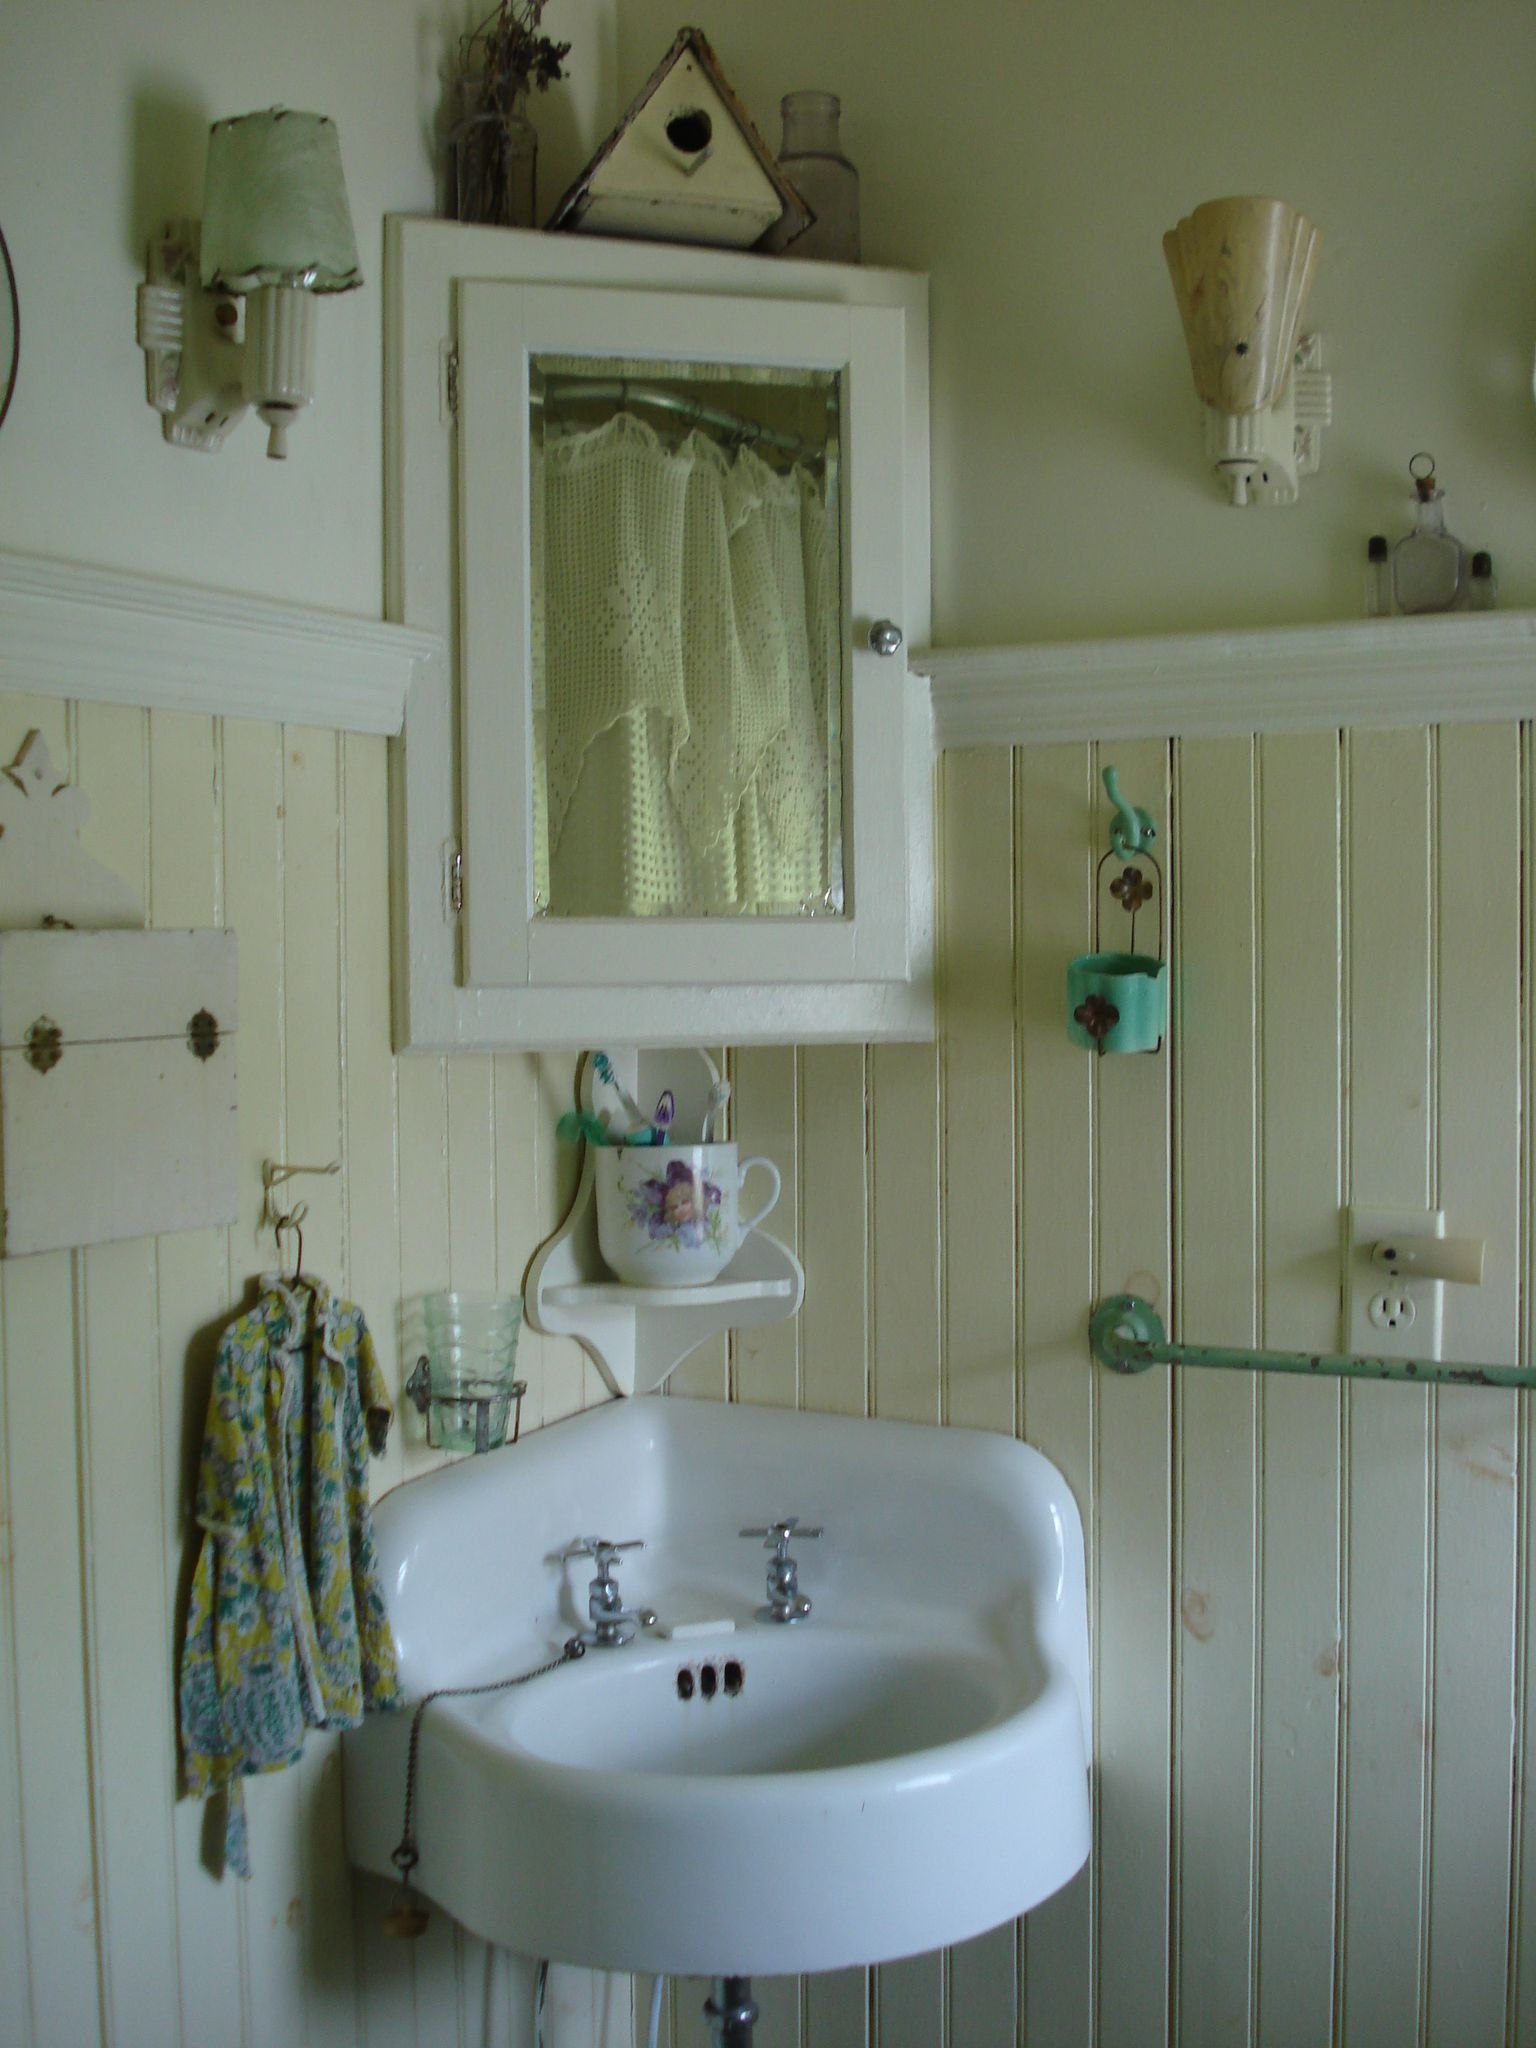 Farmhouse Bathroom Vintage Bathroom Sinks Small Bathroom Inspiration Corner Sink Bathroom